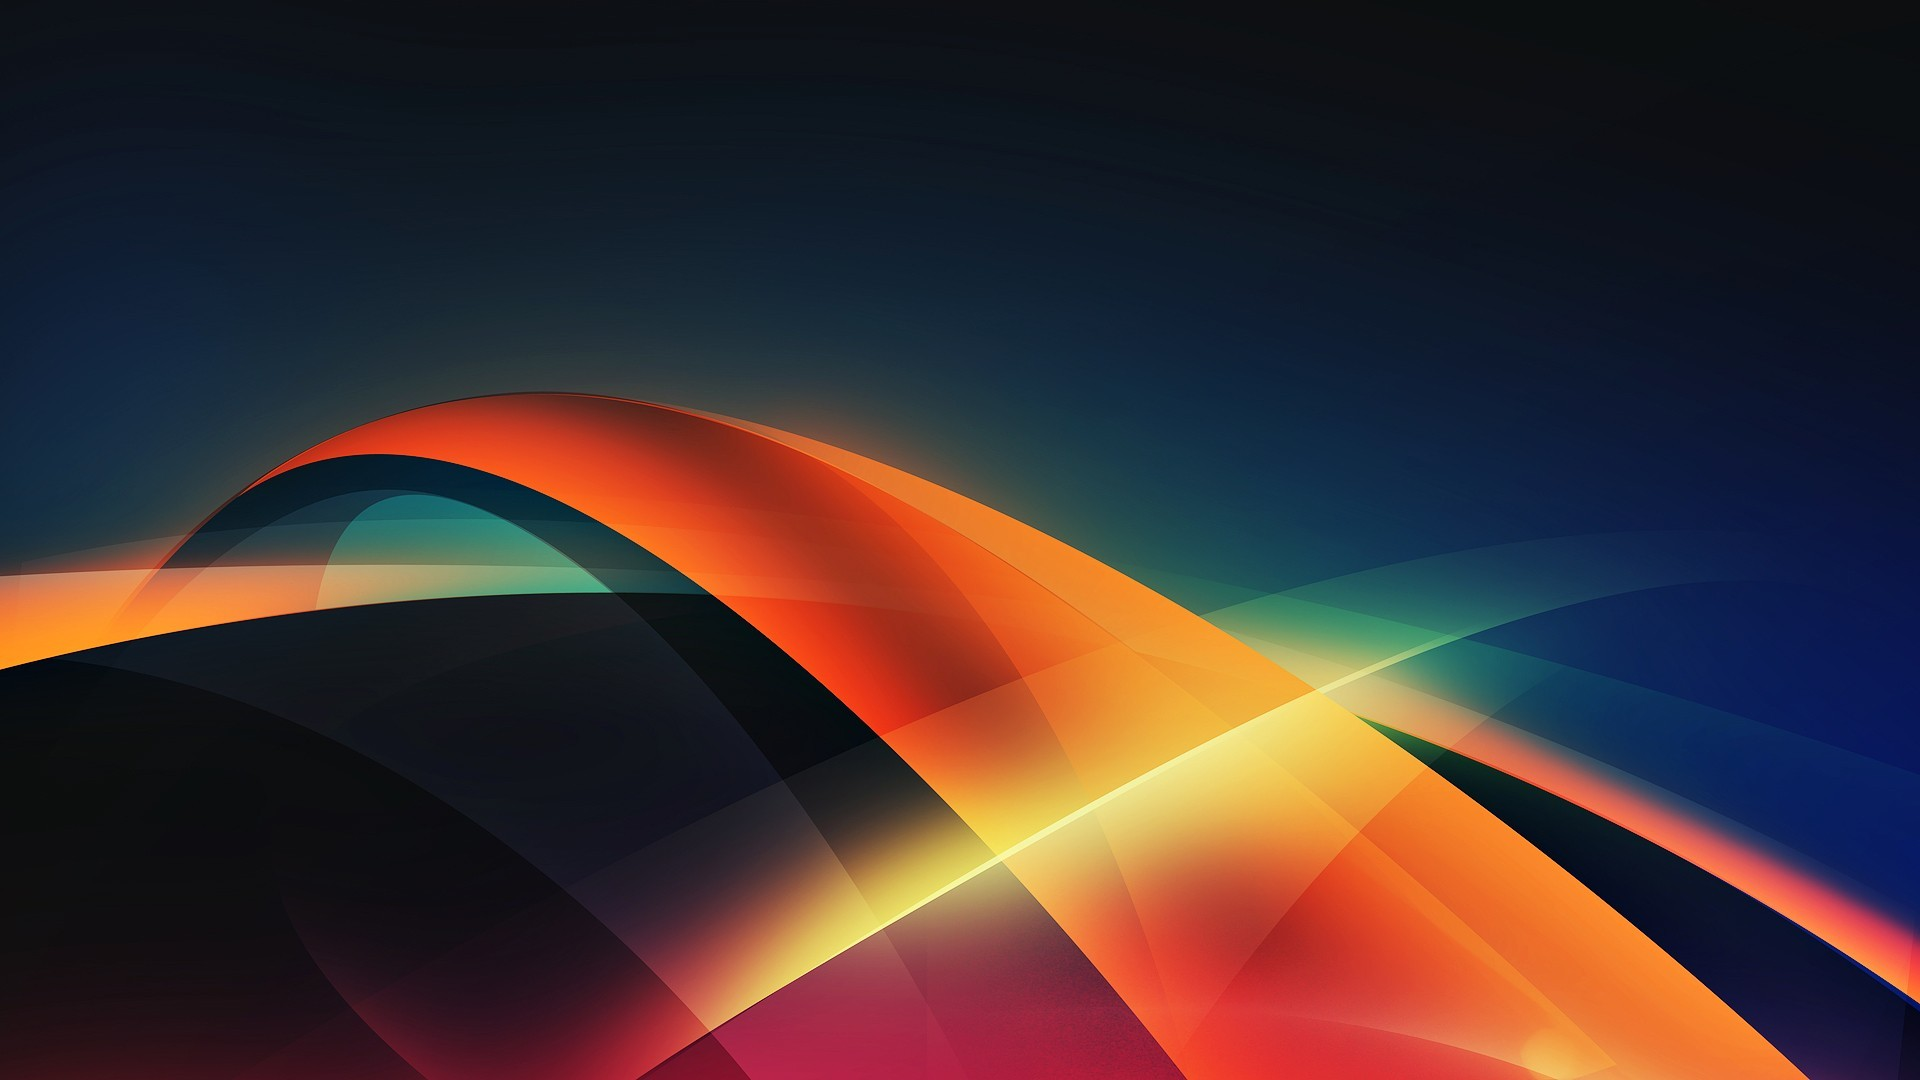 Blue And Orange Wallpapers Free Download.